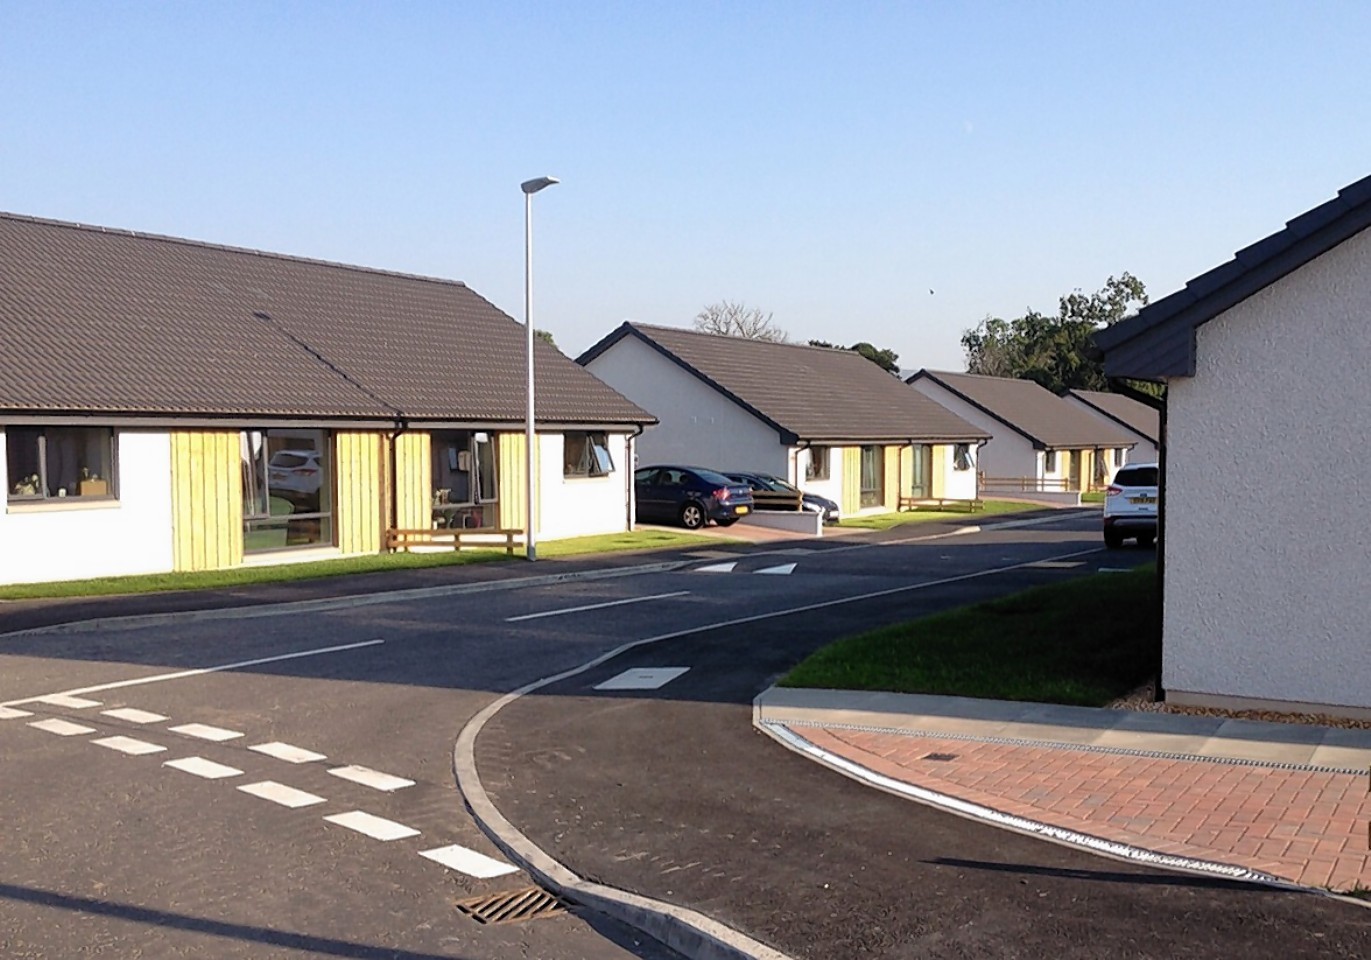 The special bungalows in Teinland Place